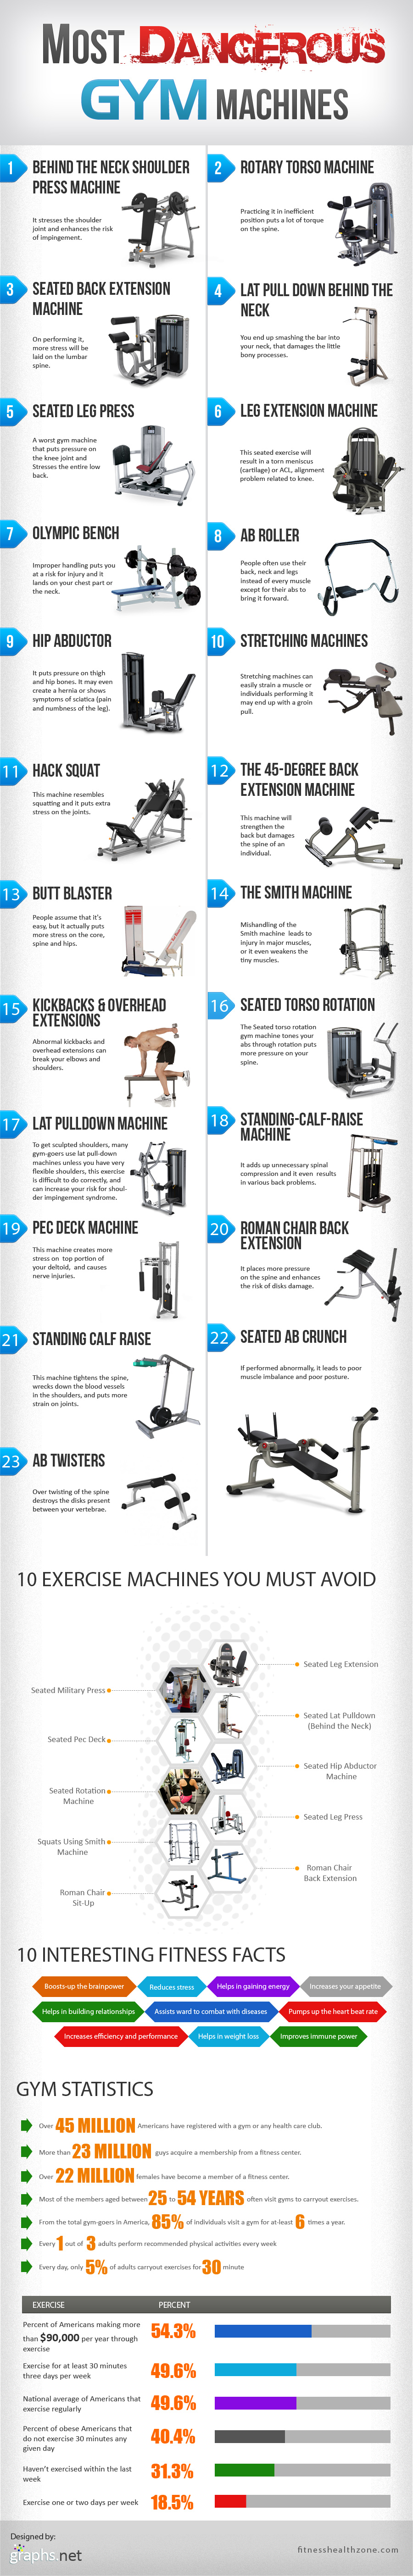 Most Dangerous Gym Machines